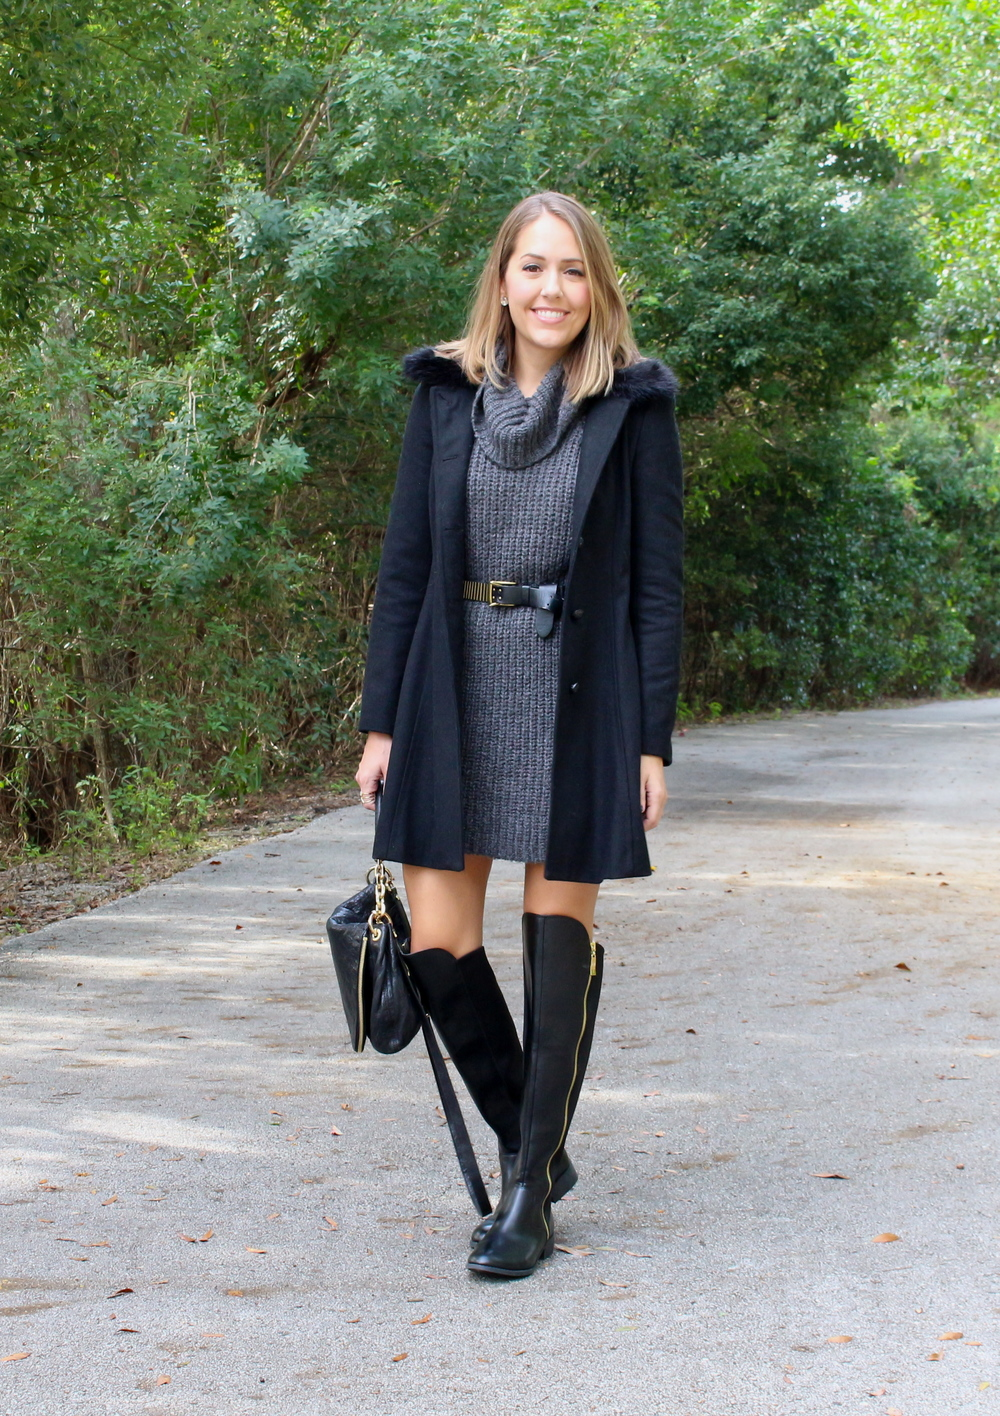 Black coat, gray sweater dress, black boots